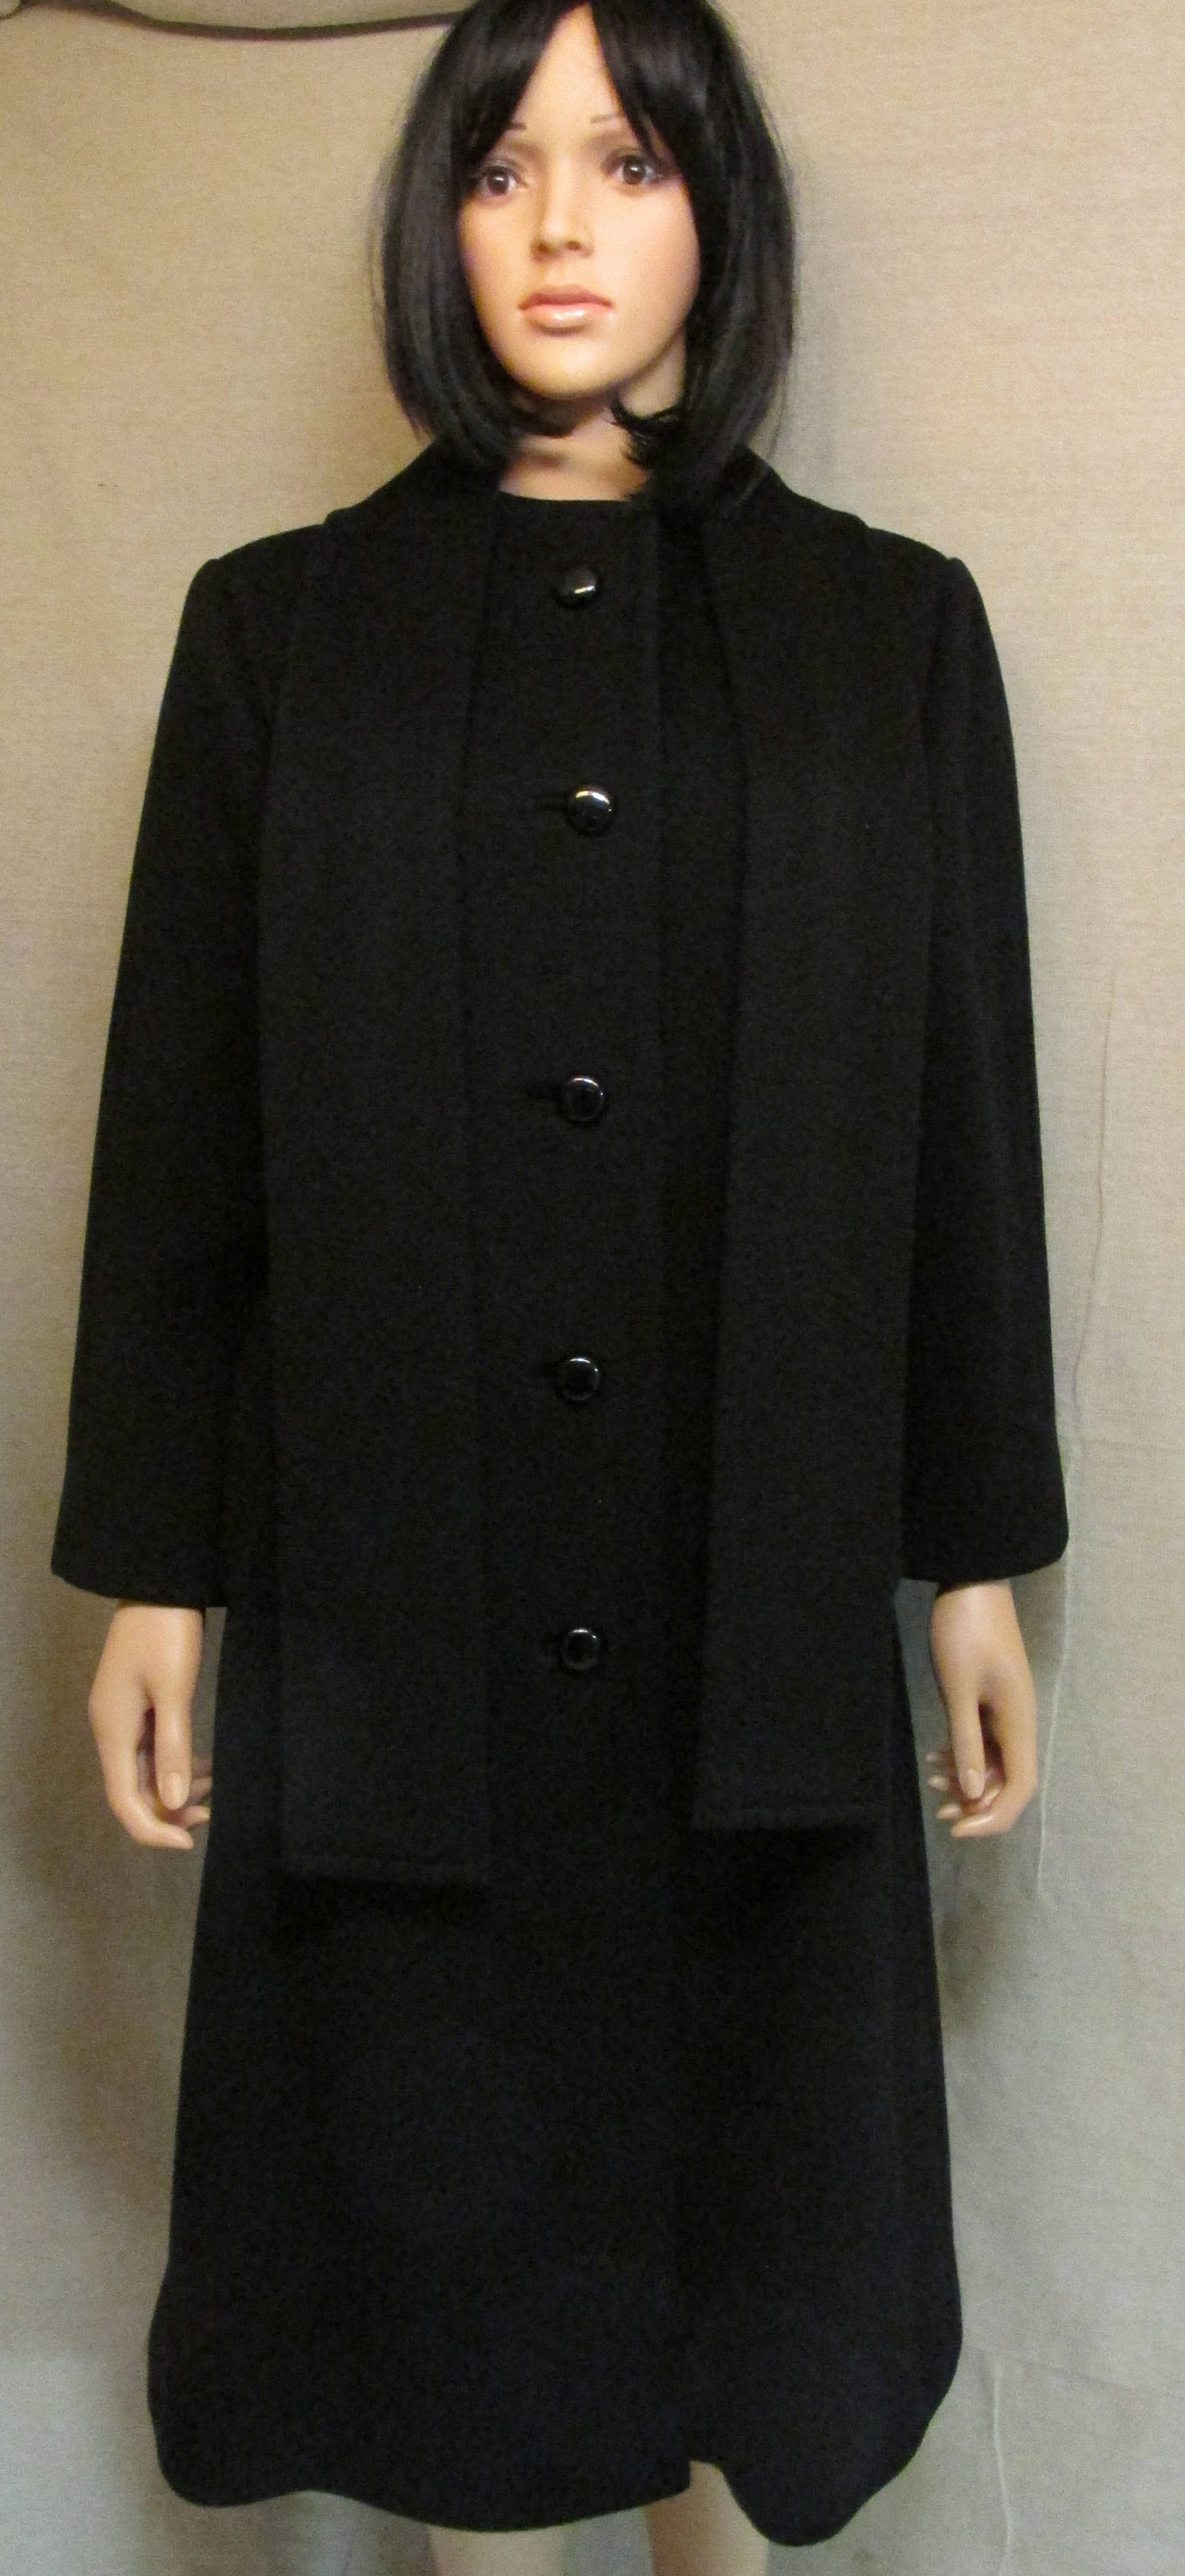 Vintage Scarf Styles -1920s to 1960s Vintage 1980s Sycamore Black Wool Dress Coat With Attached Scarf Size L Union Made Usa $0.00 AT vintagedancer.com